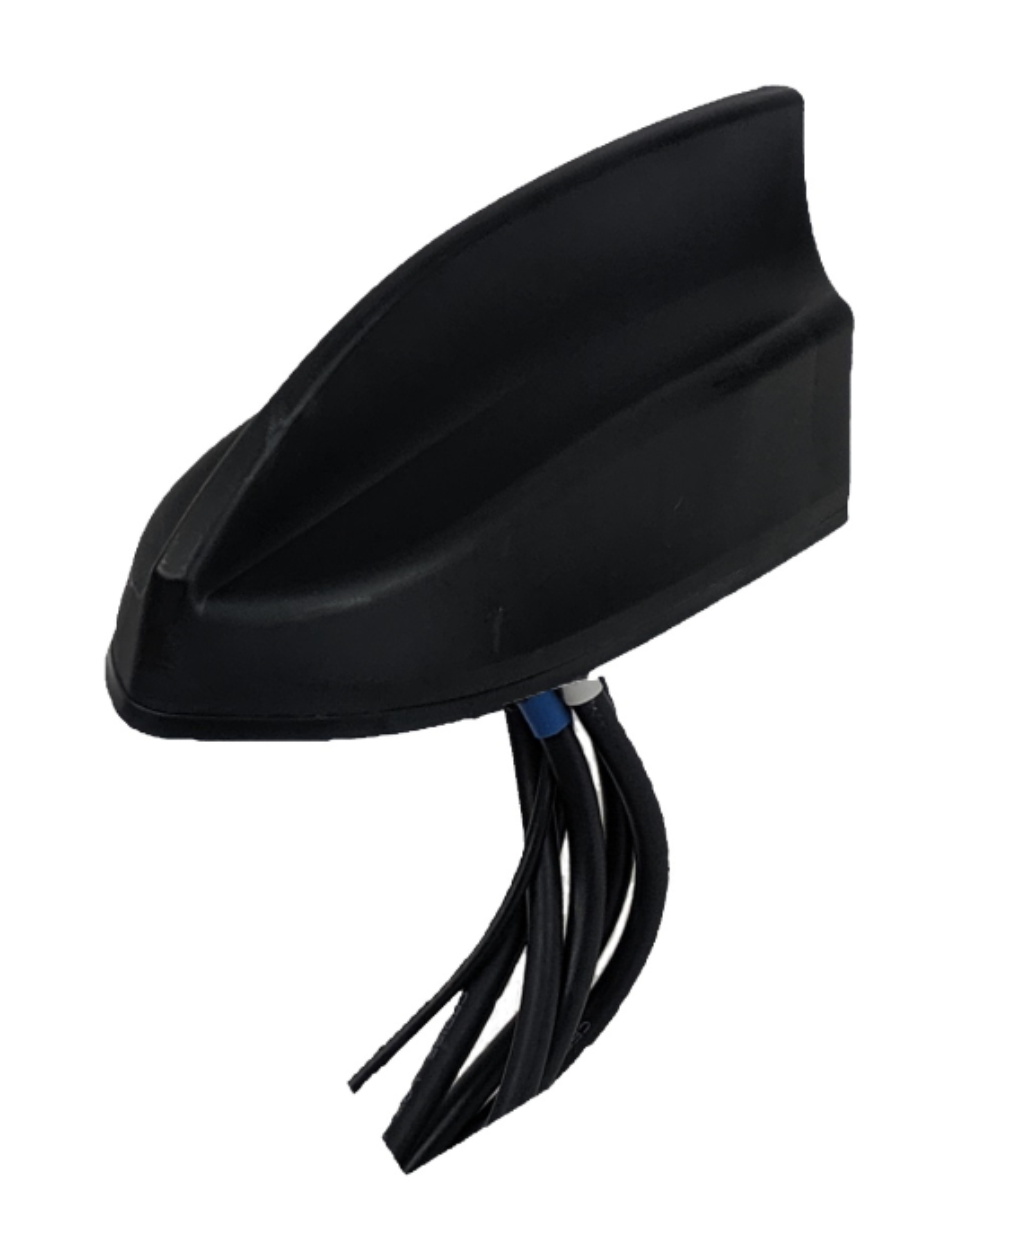 RMXD-G4-15-TT-B: Shark Fin Antenna with 1x GPS, 1x LTE and 2x TNC-Male Connectors